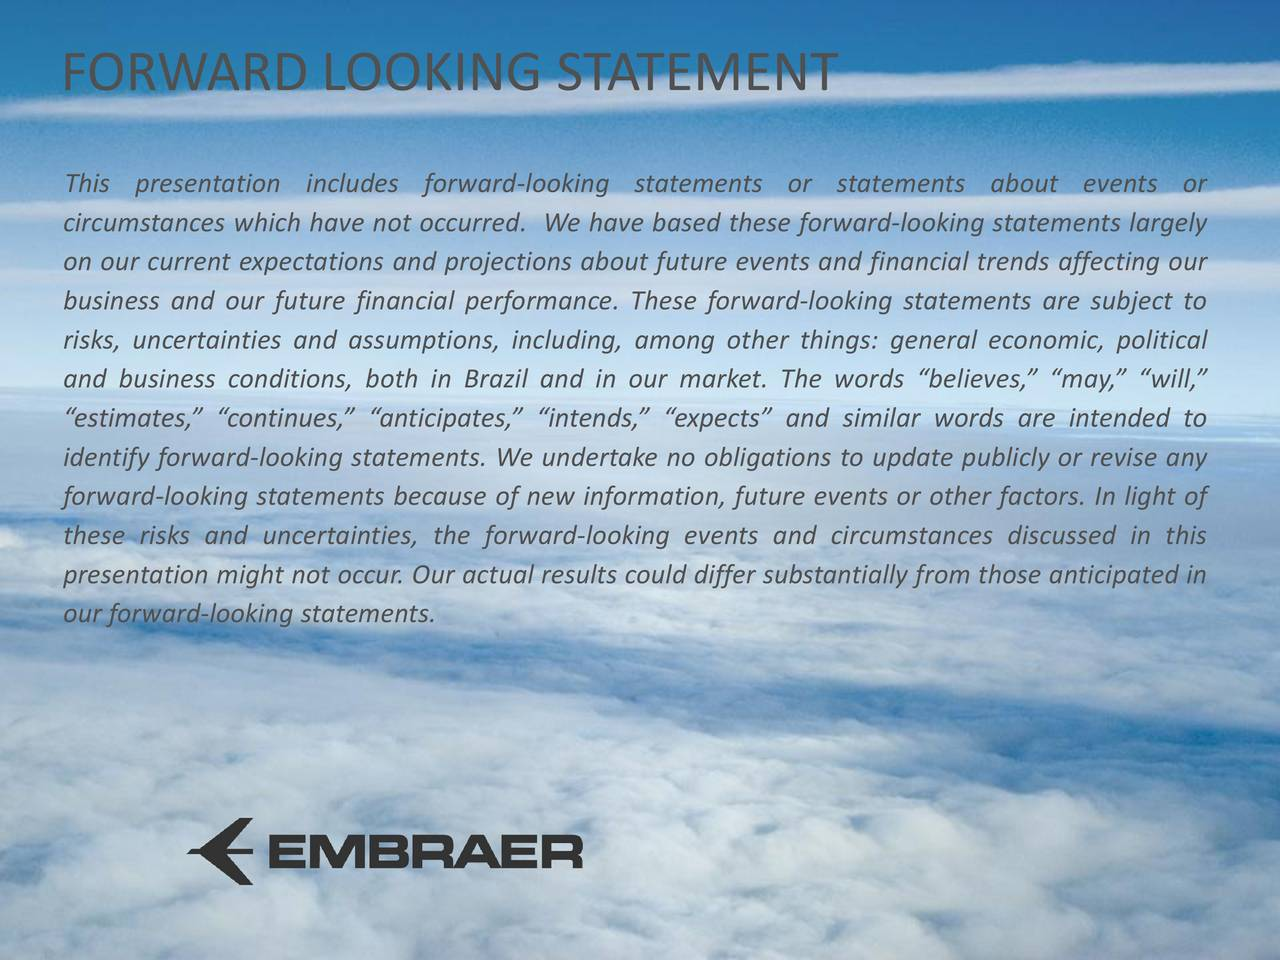 This presentation includes forward-looking statements or statements about events or circumstances which have not occurred. We have based these forward-looking statements largely on our current expectations and projections about future events and financial trends affecting our business and our future financial performance. These forward-looking statements are subject to risks, uncertainties and assumptions, including, among other things: general economic, political and business conditions, both in Brazil and in our market. The words believes, may, will, estimates, continues, anticipates, intends, expects and similar words are intended to identify forward-looking statements. We undertake no obligations to update publicly or revise any forward-looking statements because of new information, future events or other factors. In light of these risks and uncertainties, the forward-looking events and circumstances discussed in this presentation might not occur. Our actual results could differ substantially from those anticipated in our forward-looking statements.